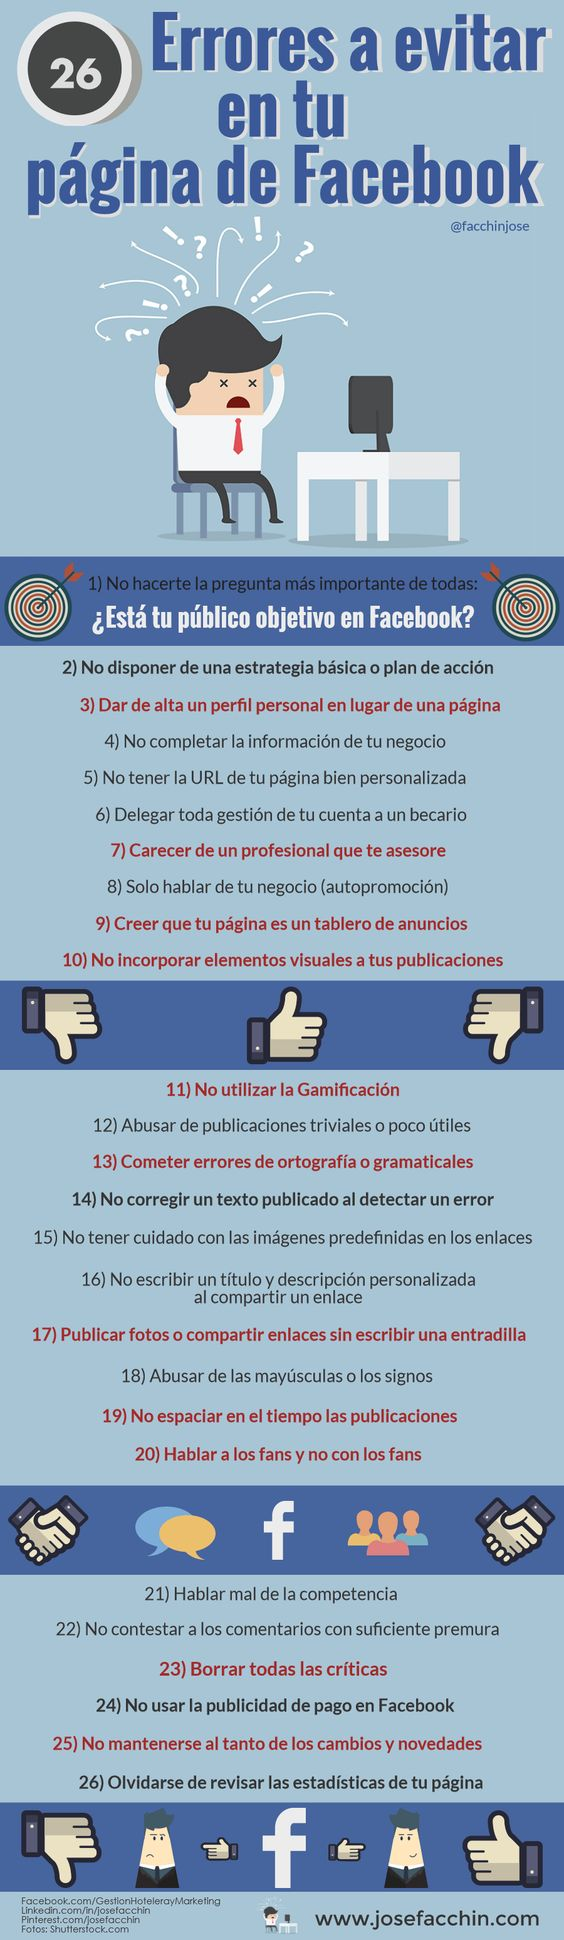 Errores en facebook